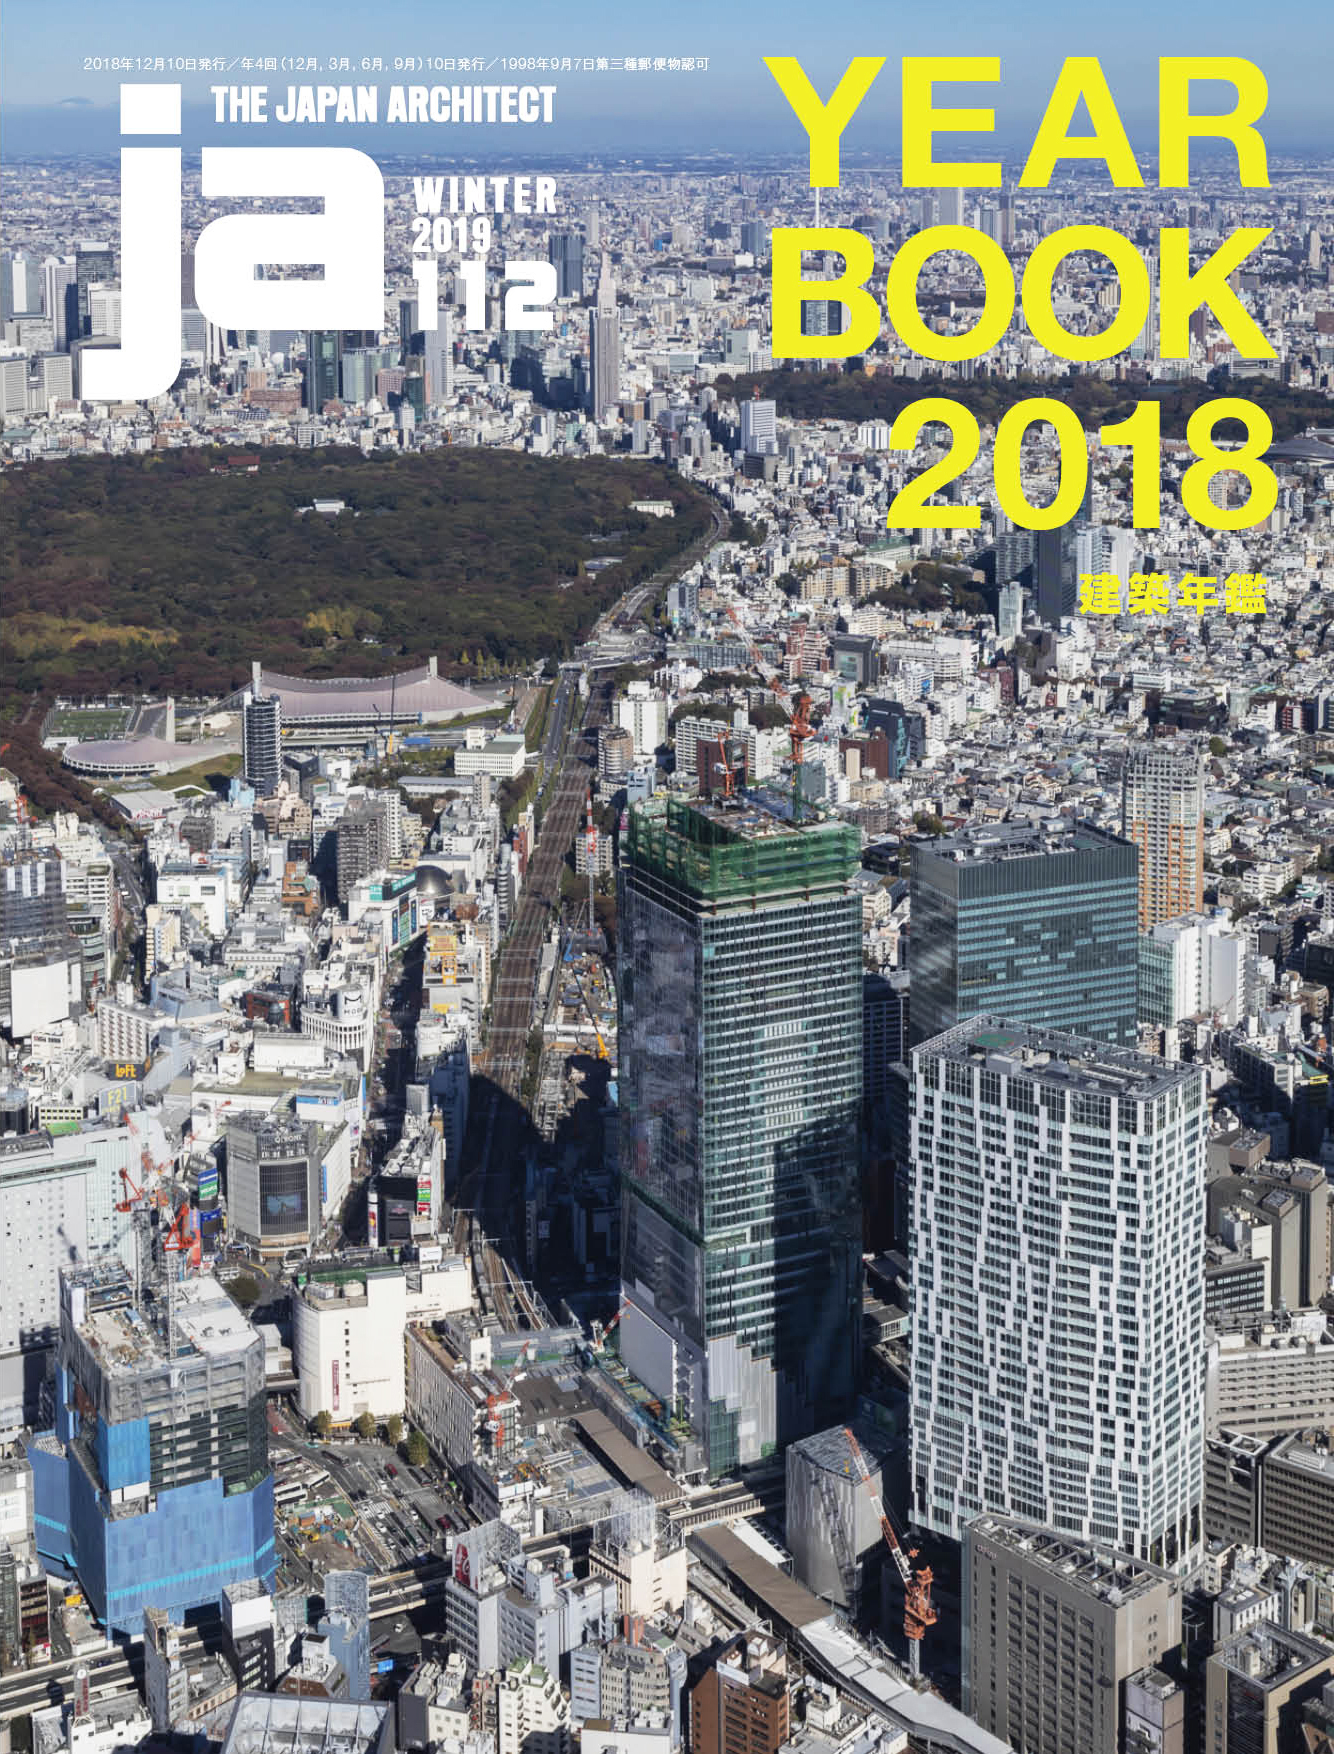 JA112 WINTER, 2019  YEARBOOK 2018 建築年鑑